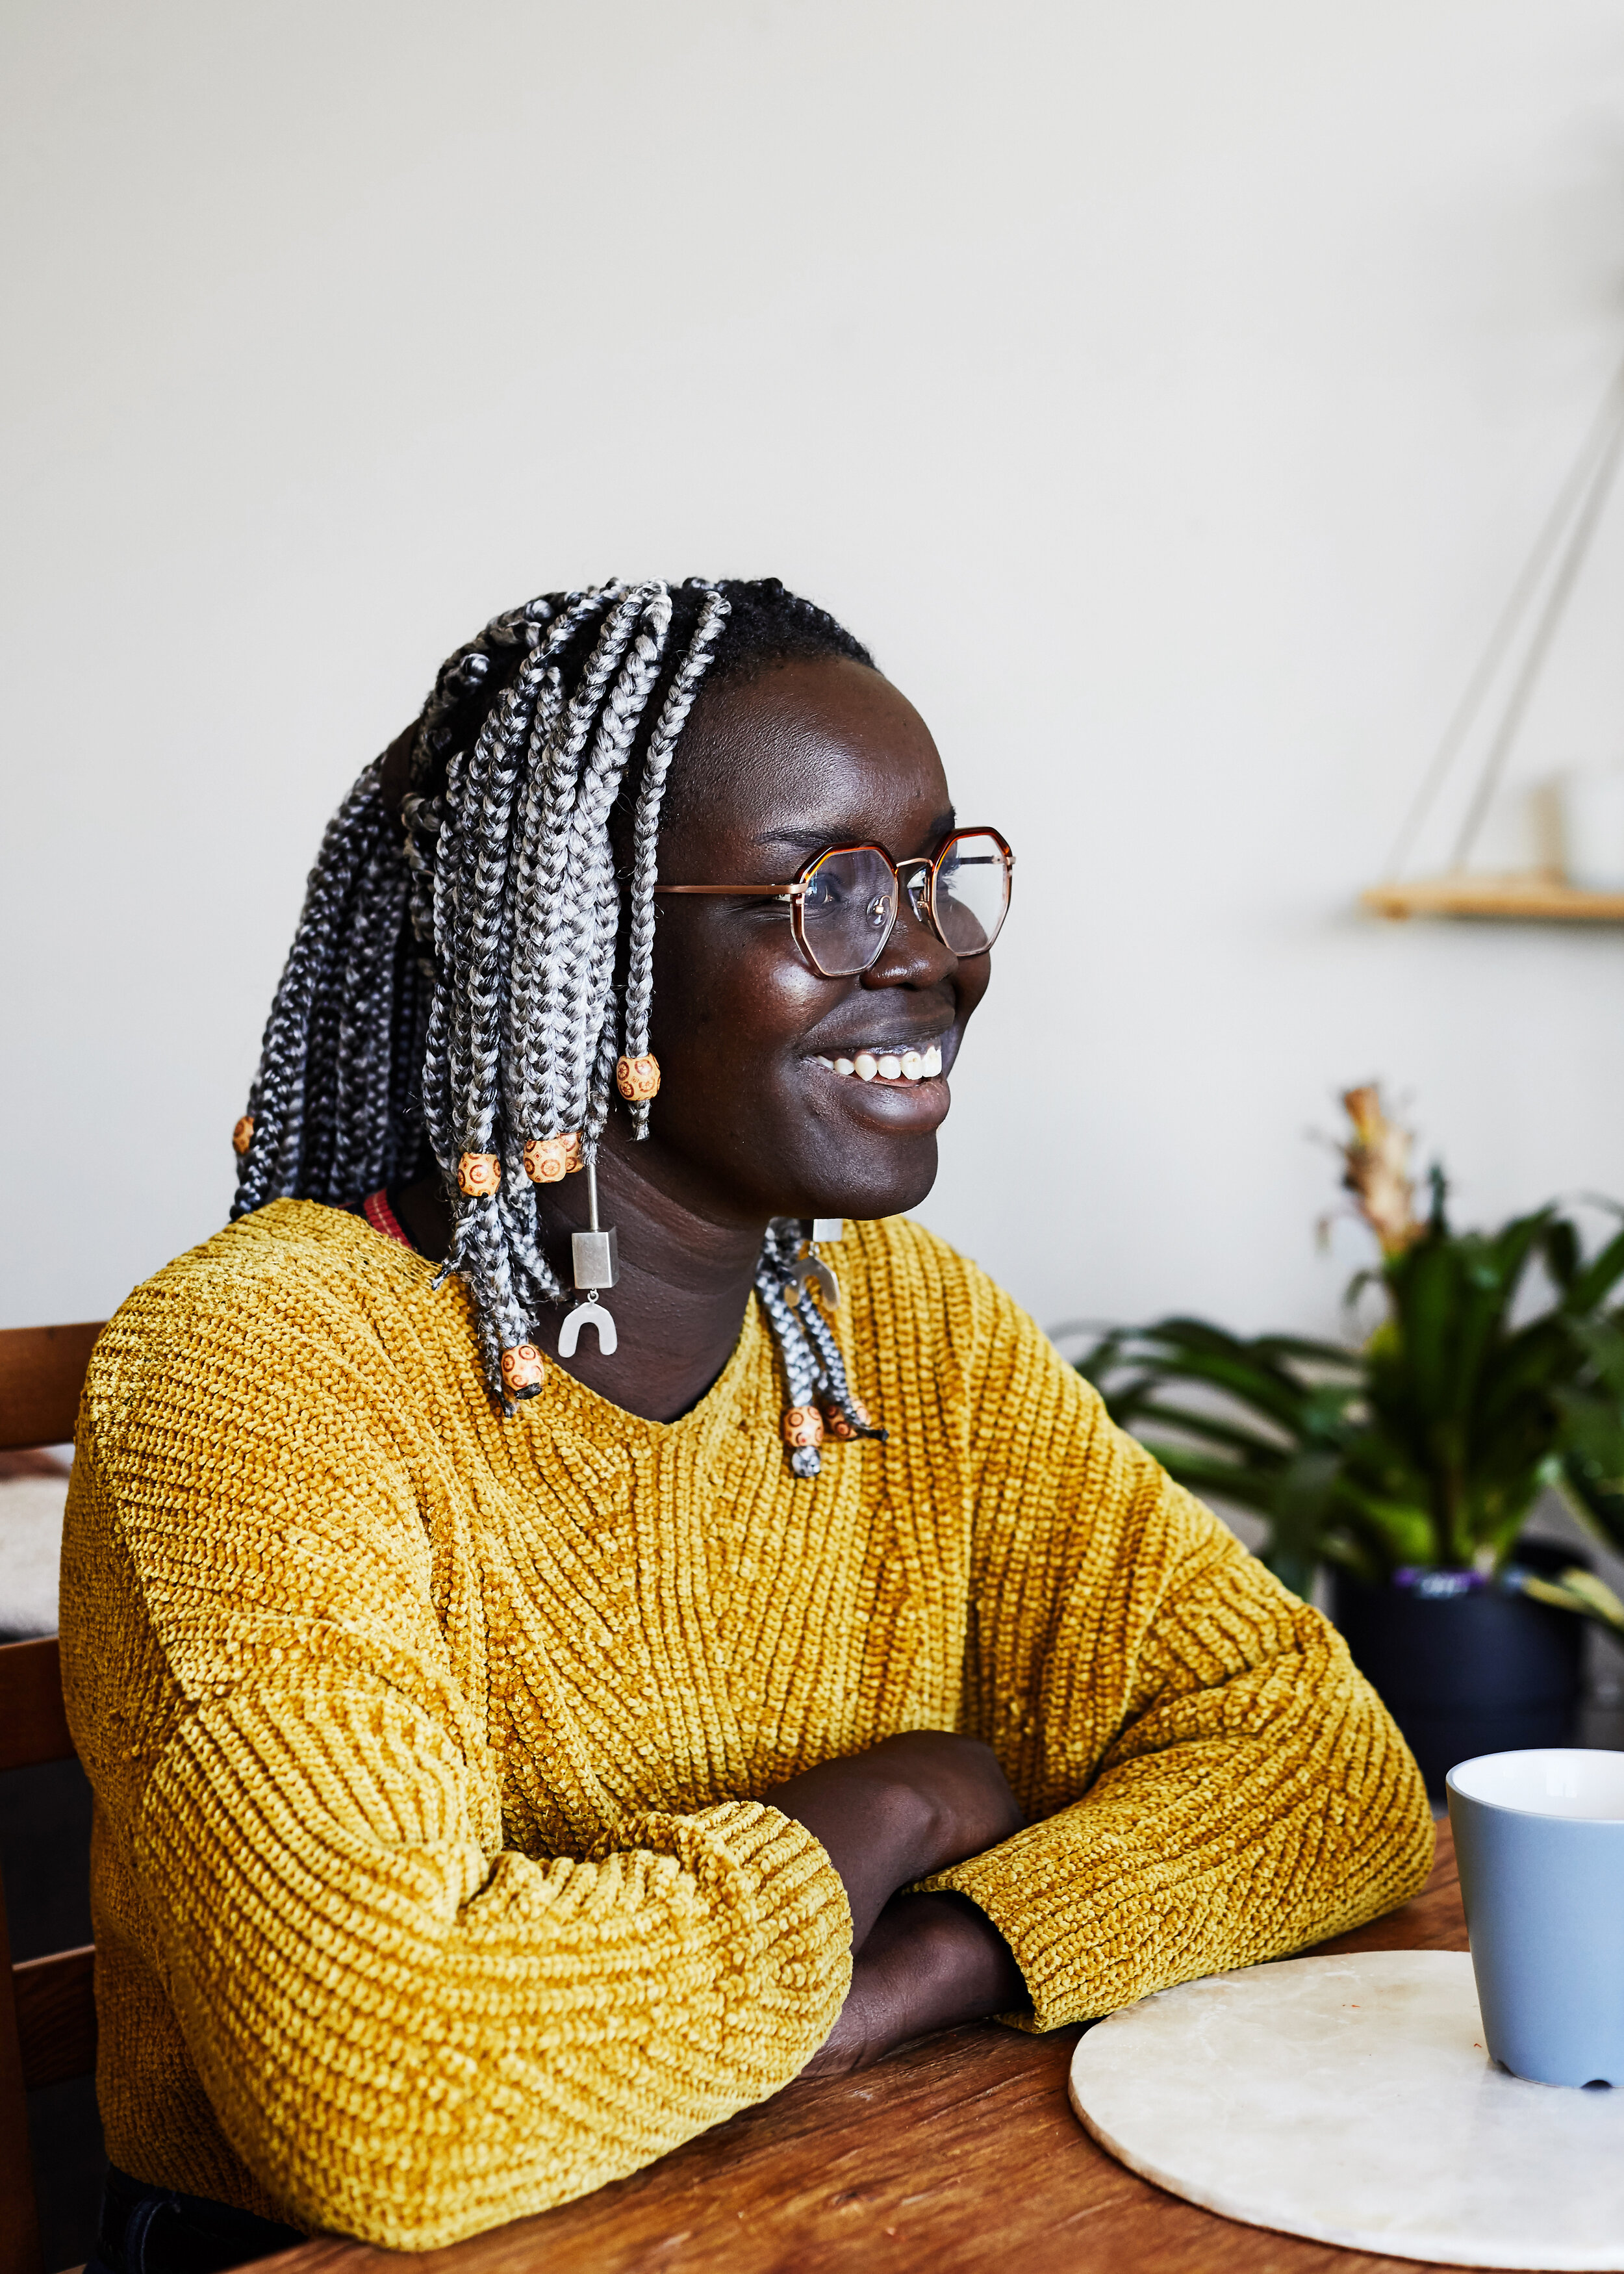 Extraordinary Routines interview Atong Atem